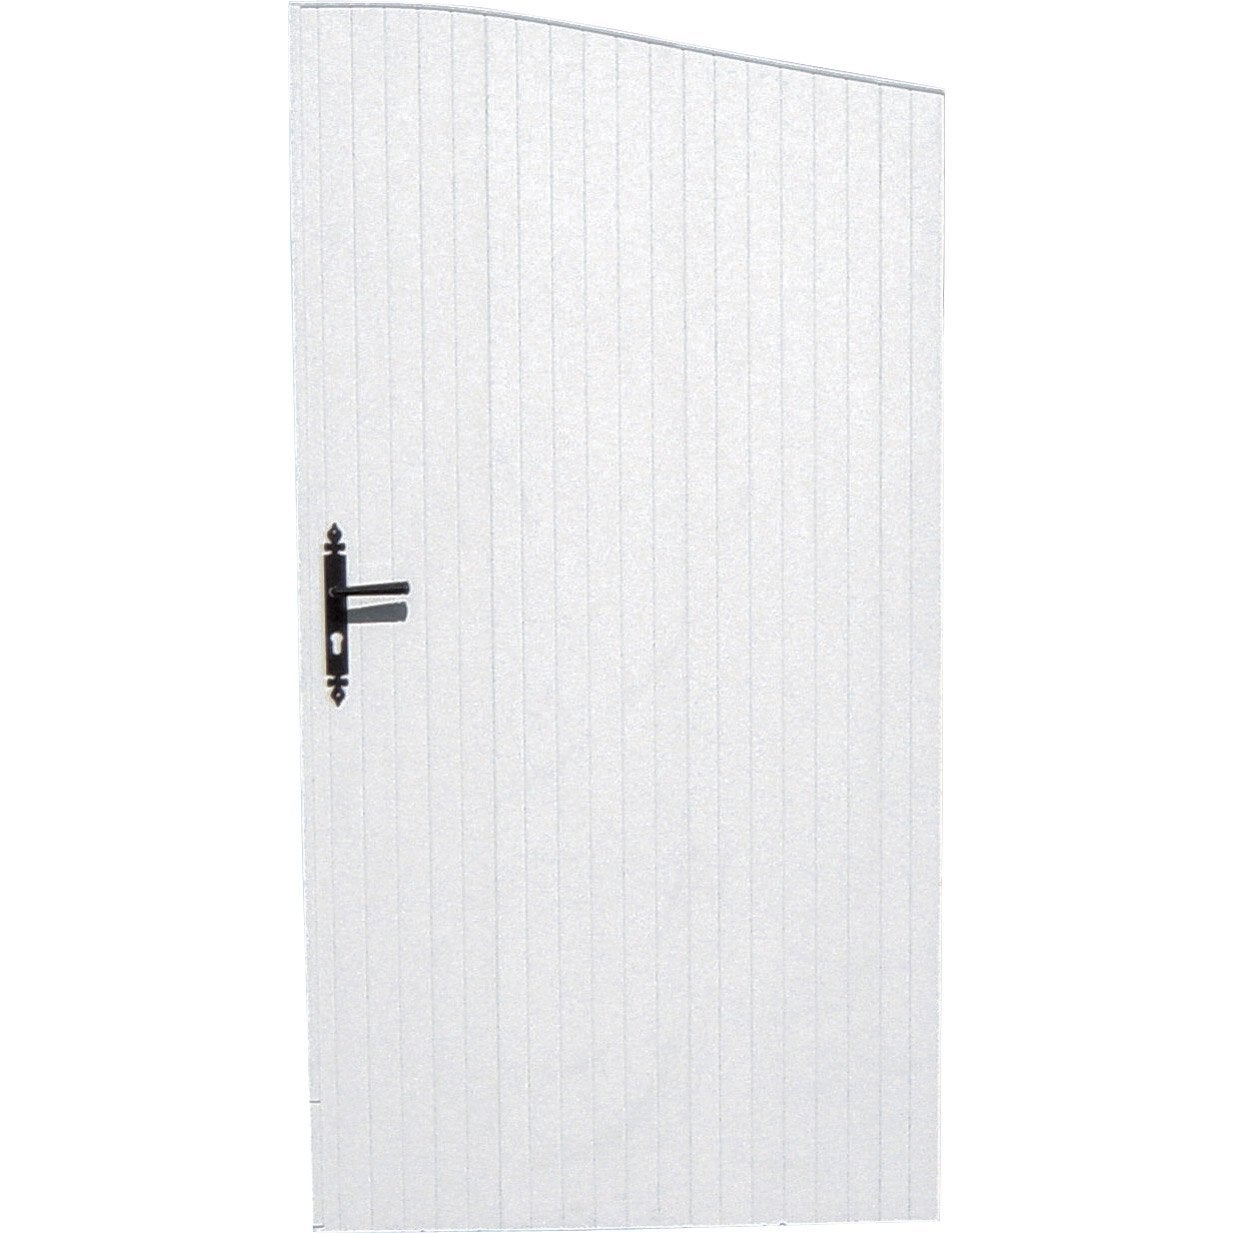 Portillon battant quiberon x cm blanc leroy for Portillon pas cher pvc